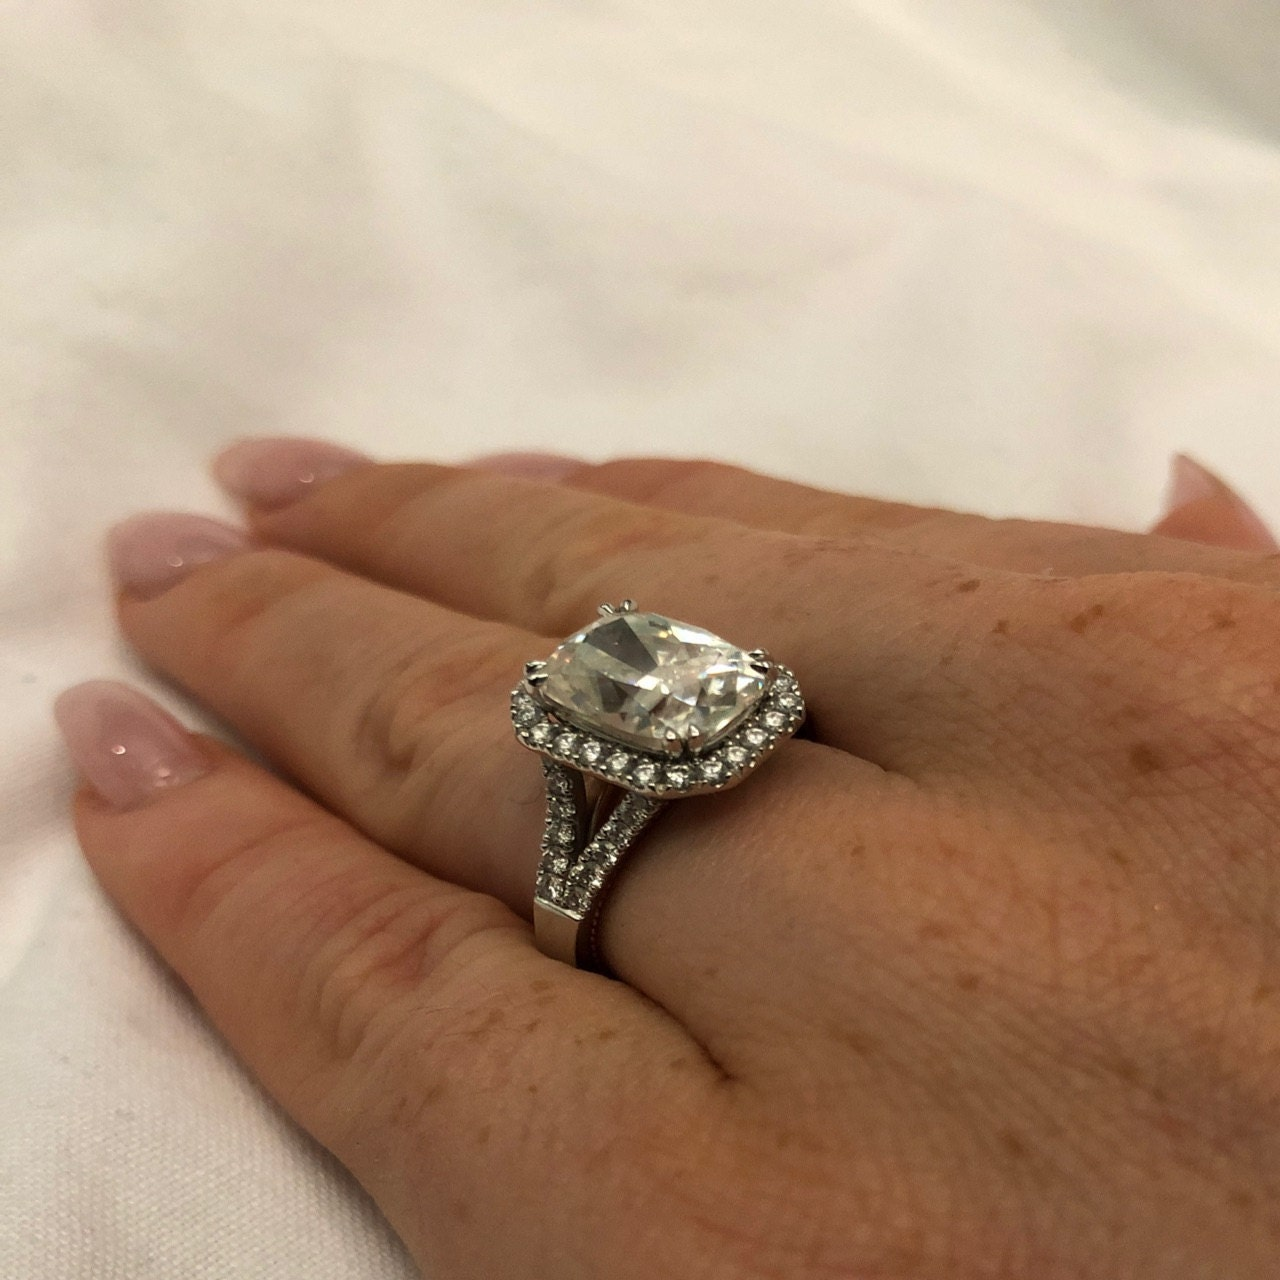 Amirali added a photo of their purchase